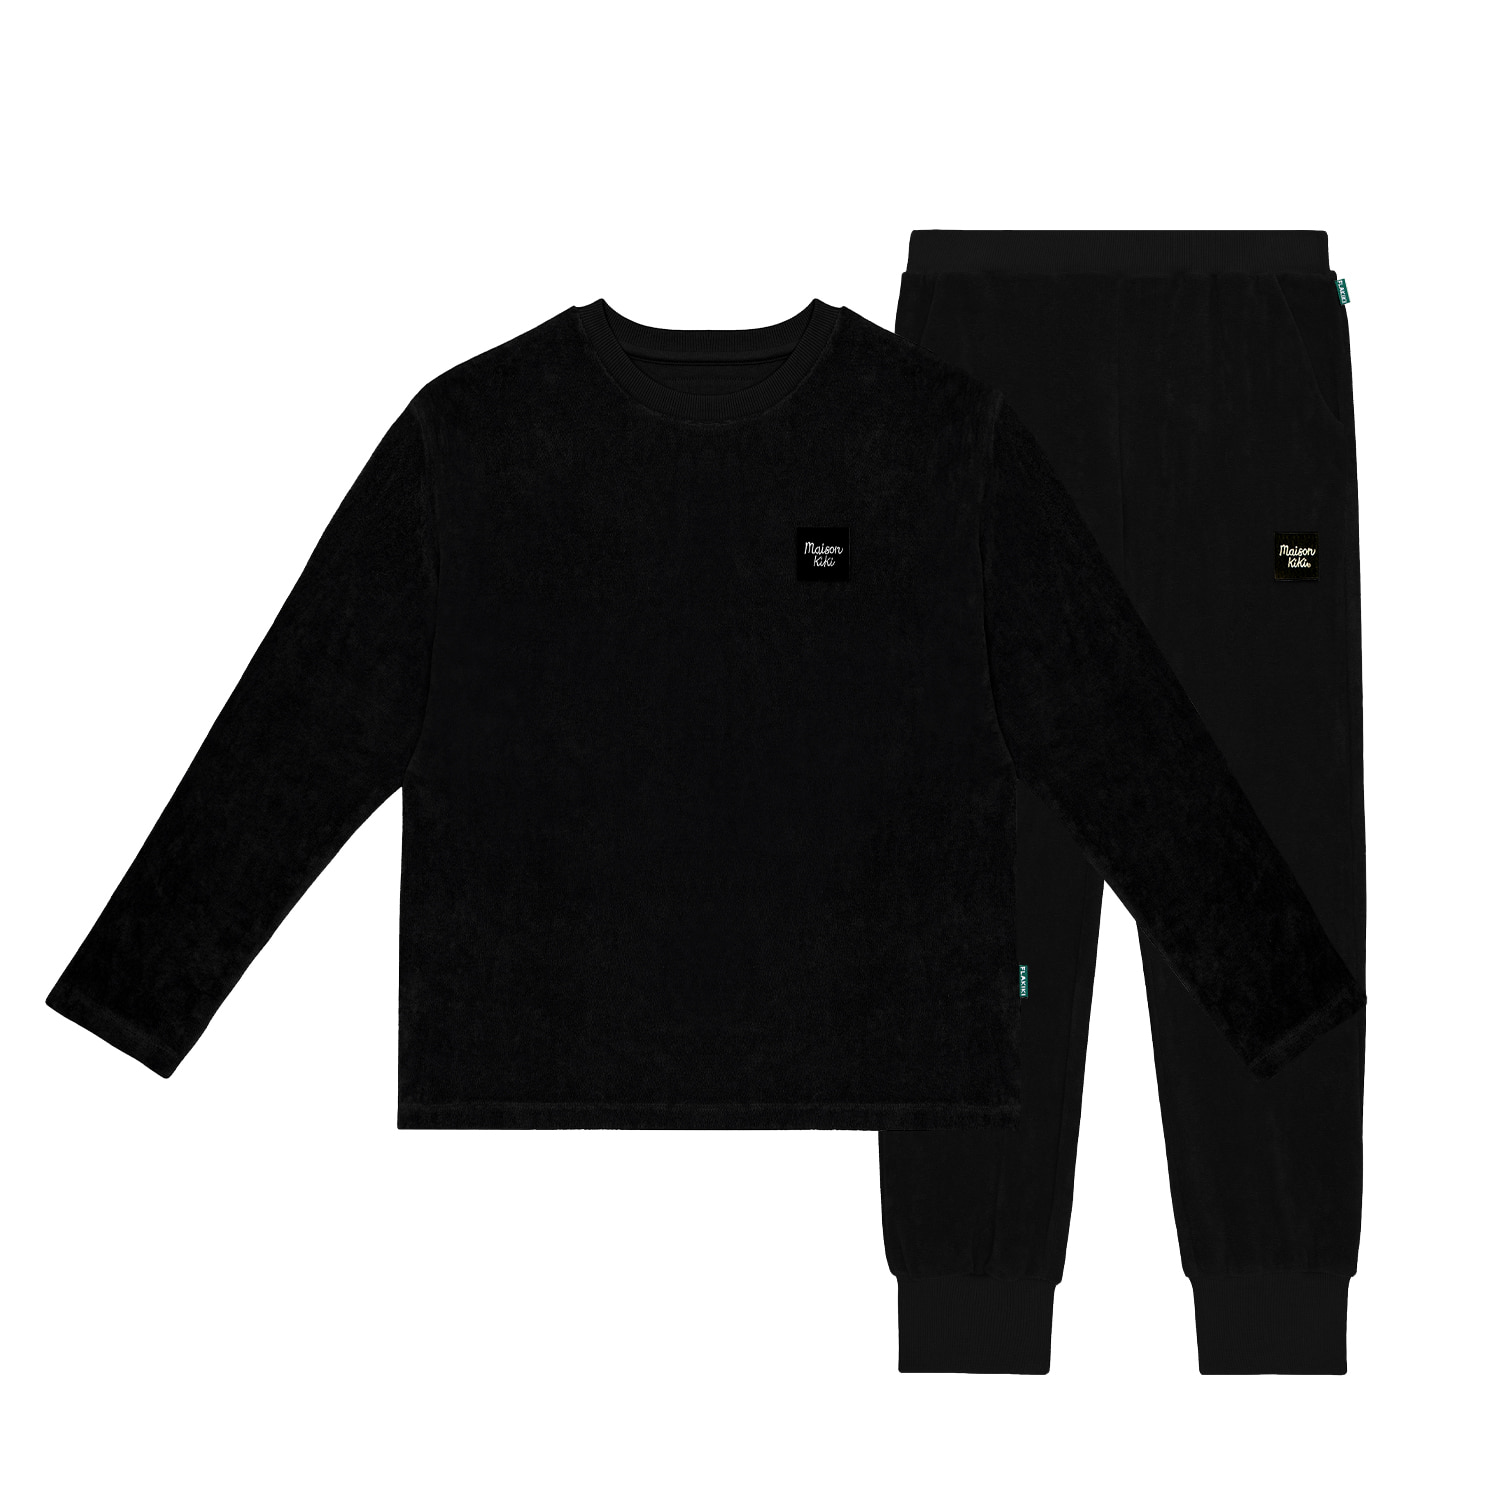 FLAKIKI AT HOME TERRY SET UP_BLACK(RESTOCK)